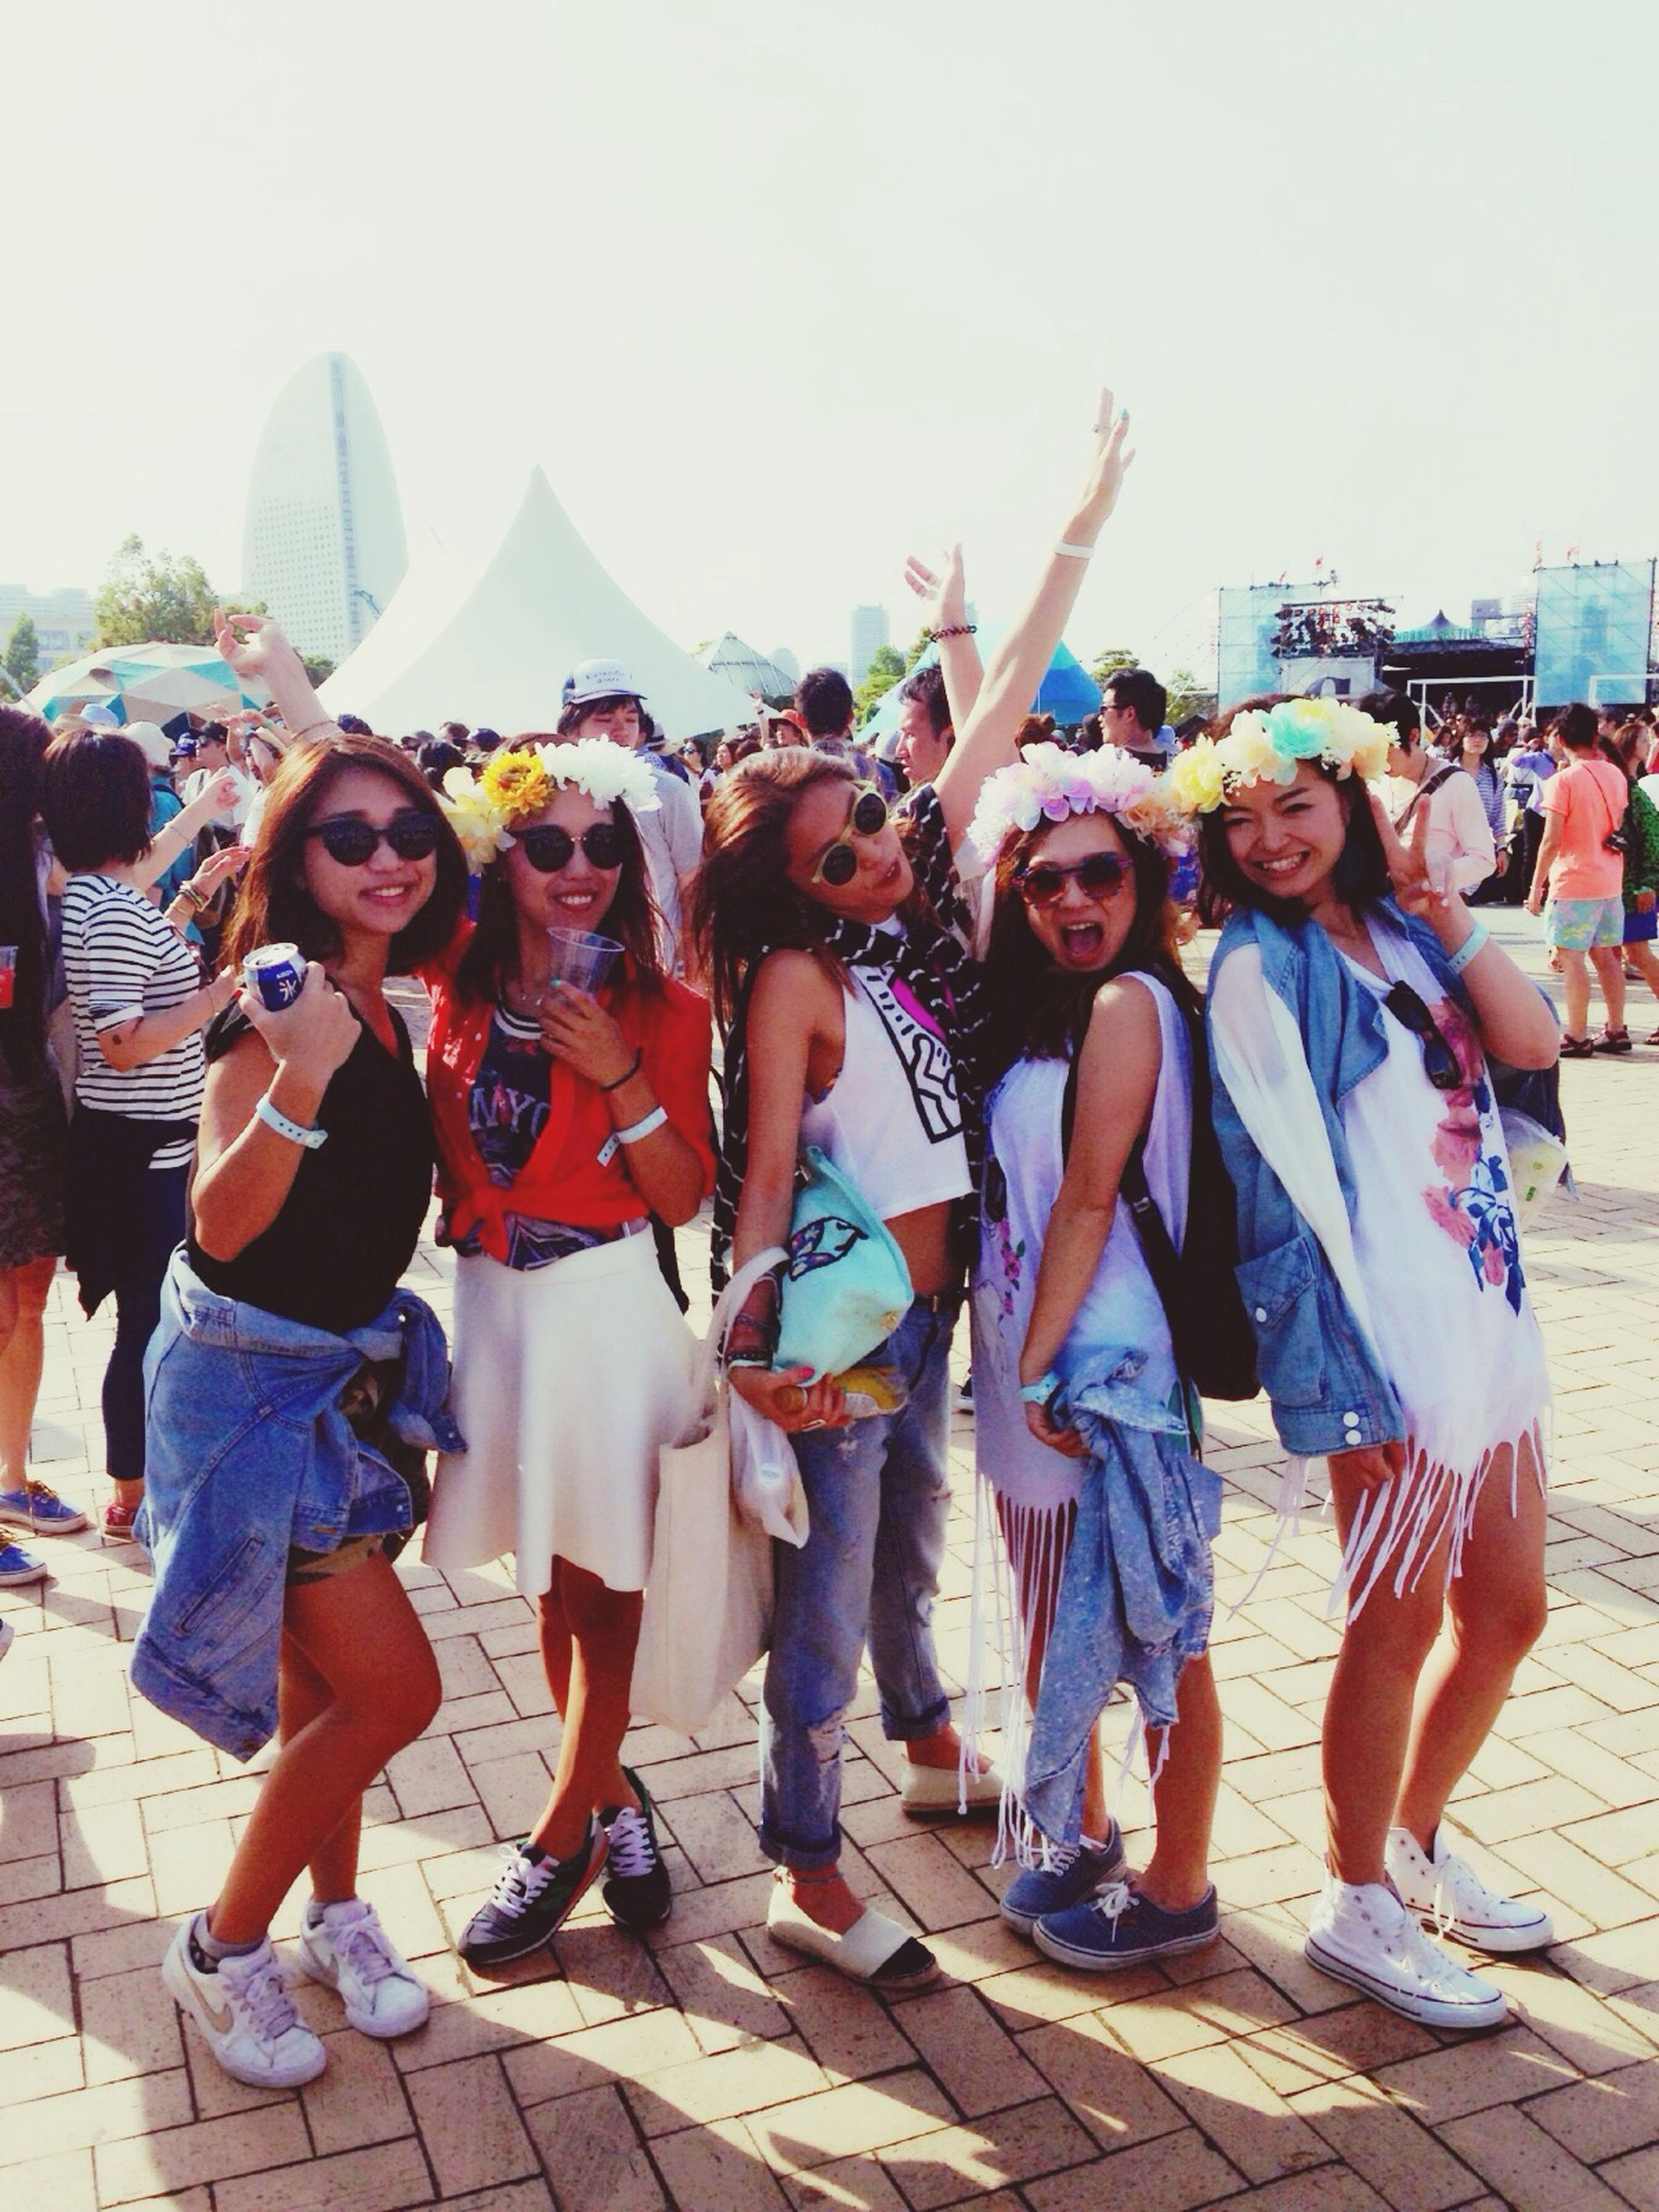 lifestyles, leisure activity, togetherness, casual clothing, friendship, full length, large group of people, person, standing, bonding, young women, happiness, love, young adult, front view, men, enjoyment, traditional clothing, vacations